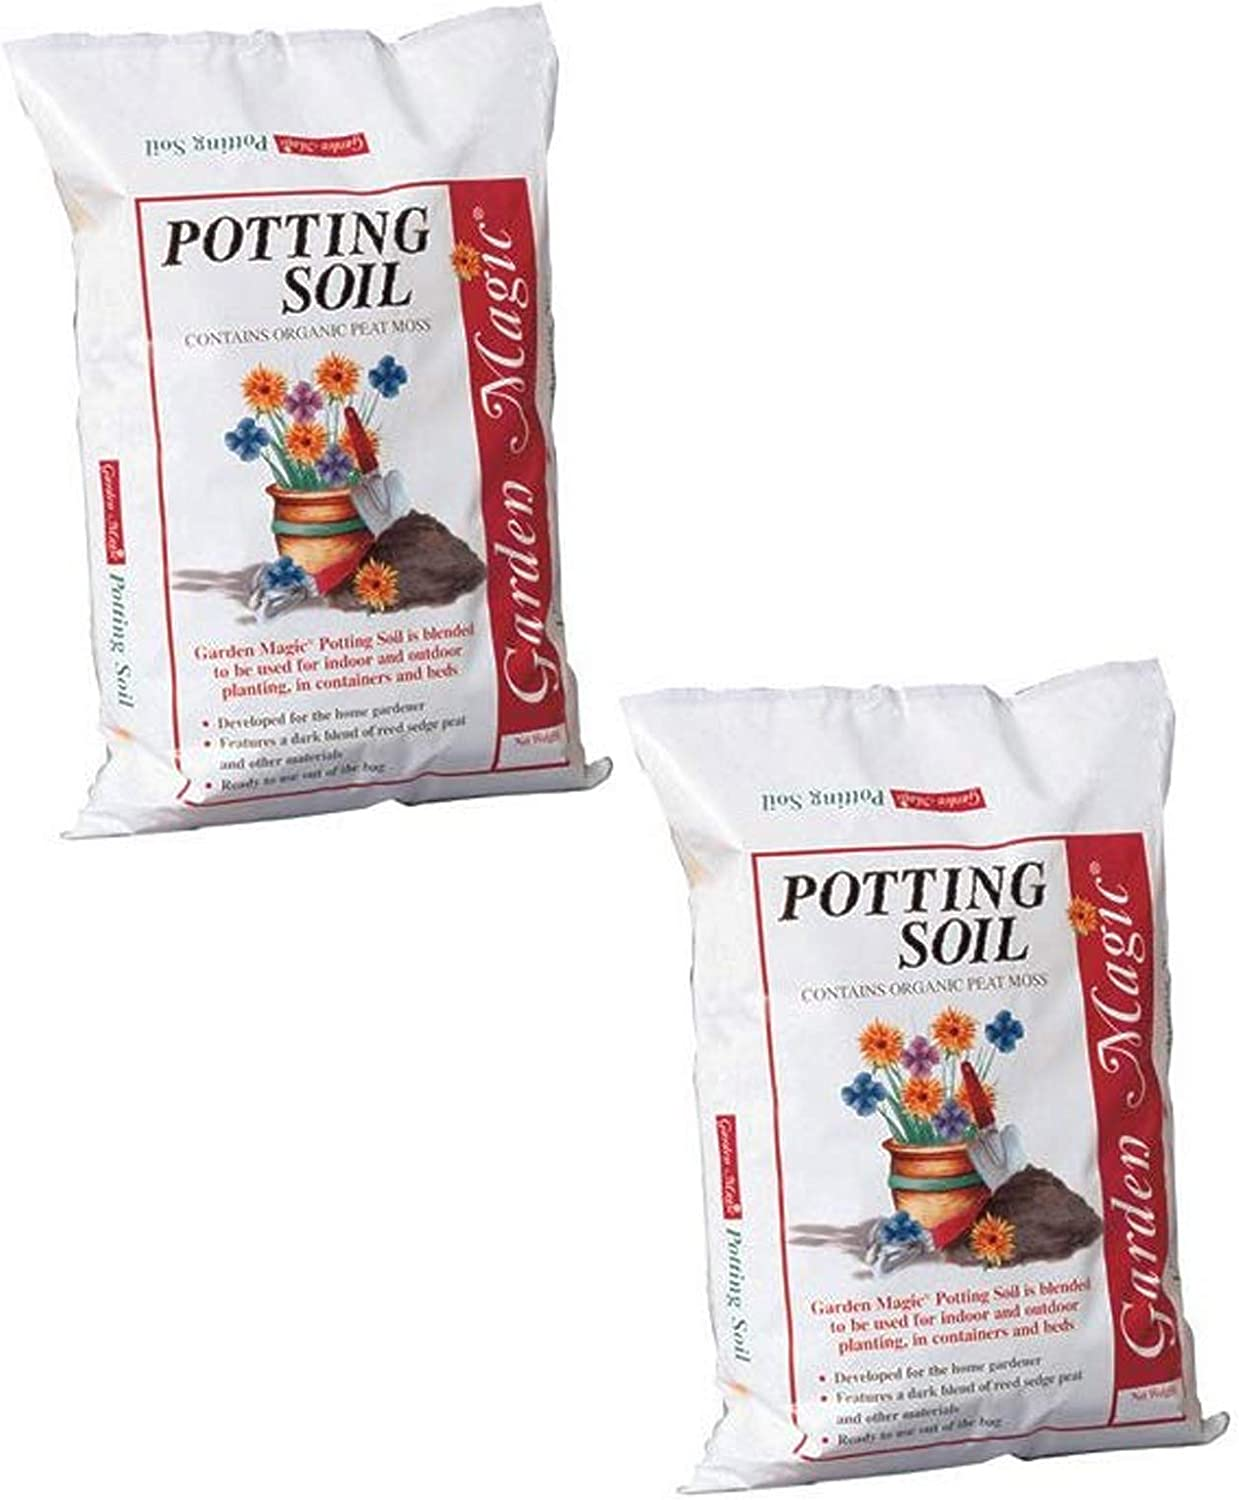 Michigan Peat Garden Magic Indoor and Outdoor Organic Planting Potting Top Soil Blend Mix, 40 Pound Bag (2 Pack)